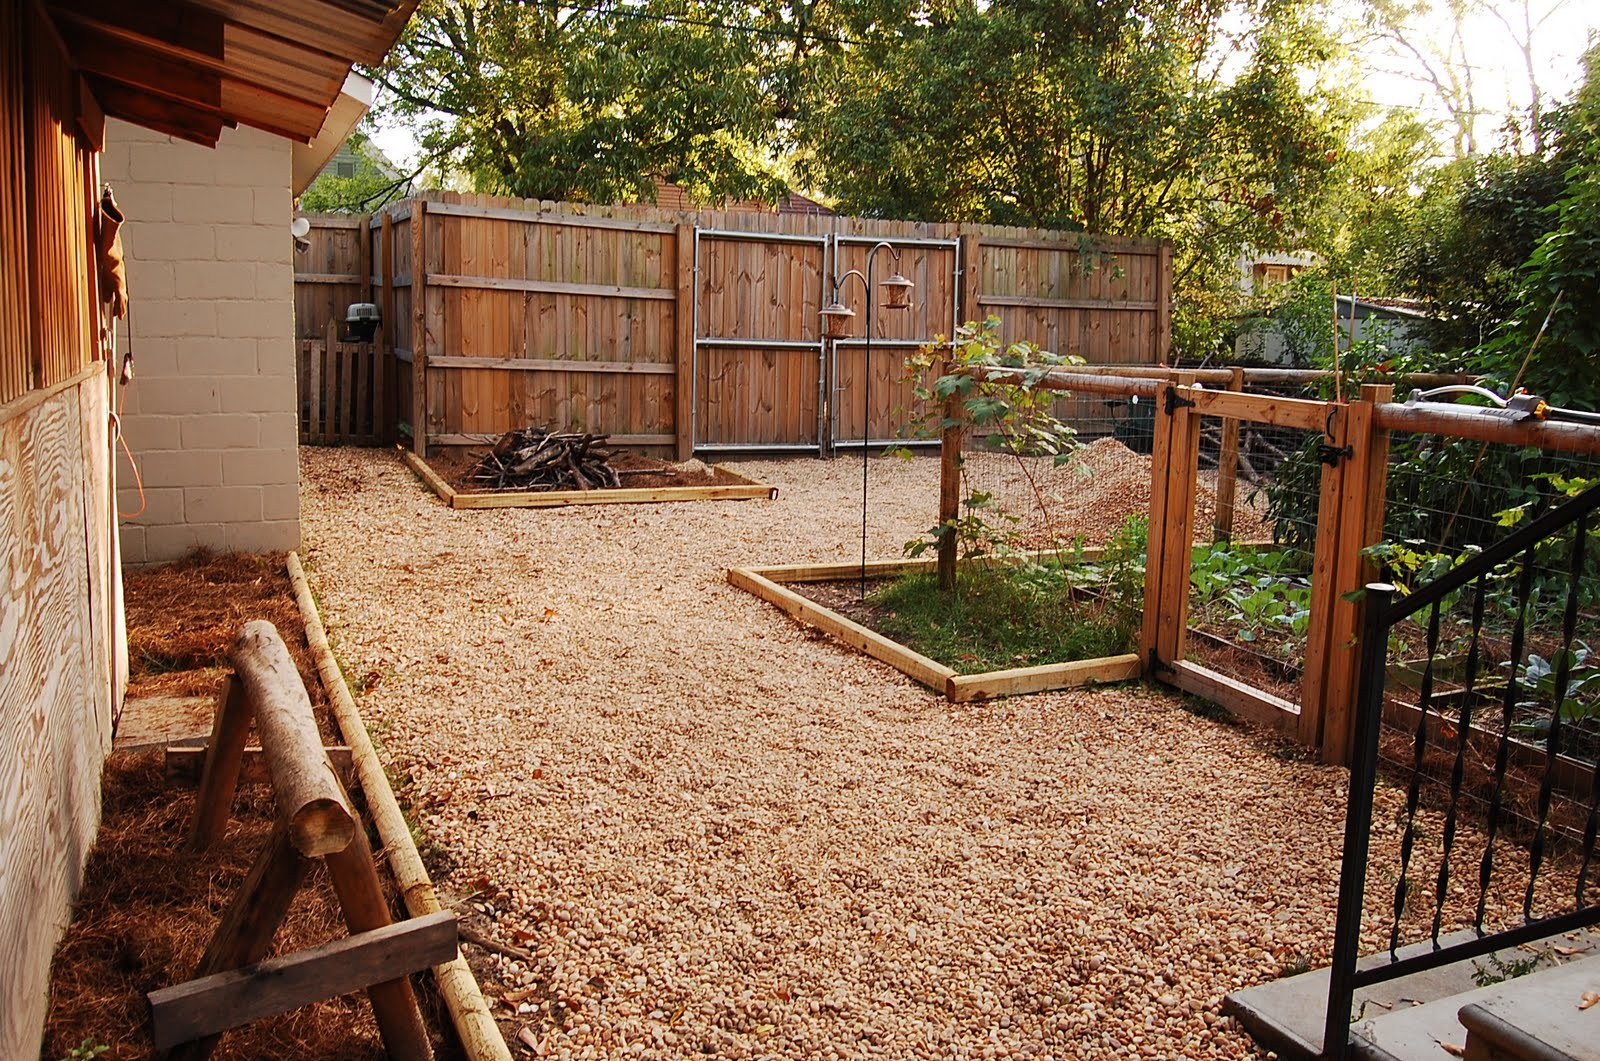 Urban self sufficientist backyard remodel on the cheap for Backyard remodel ideas on a budget